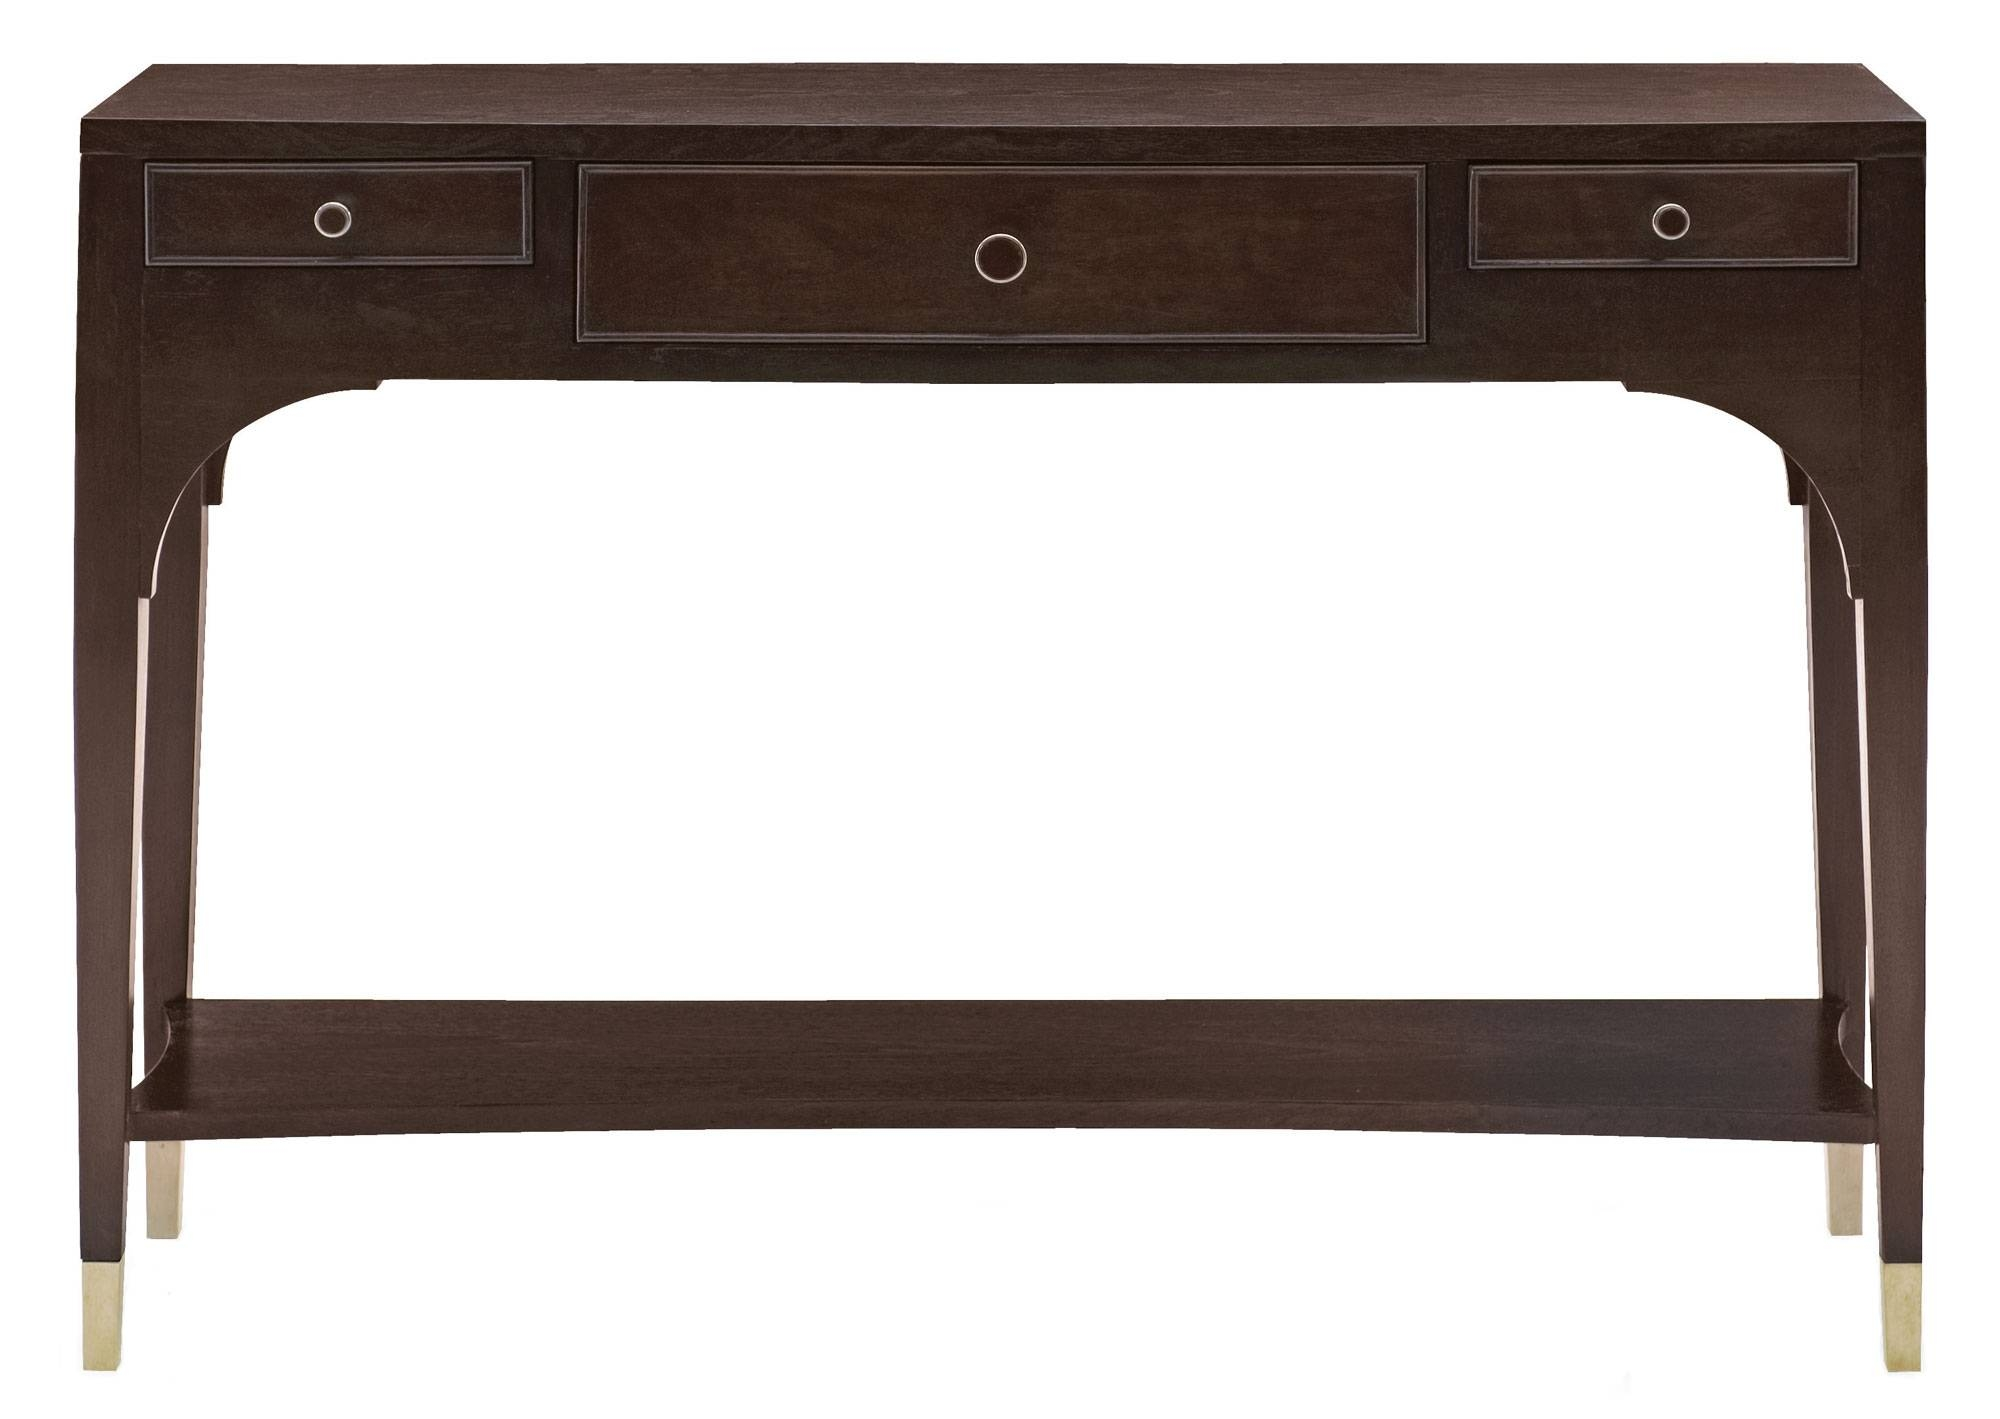 Console Table | Bernhardt pertaining to Bernhardt Console Tables (Image 9 of 15)